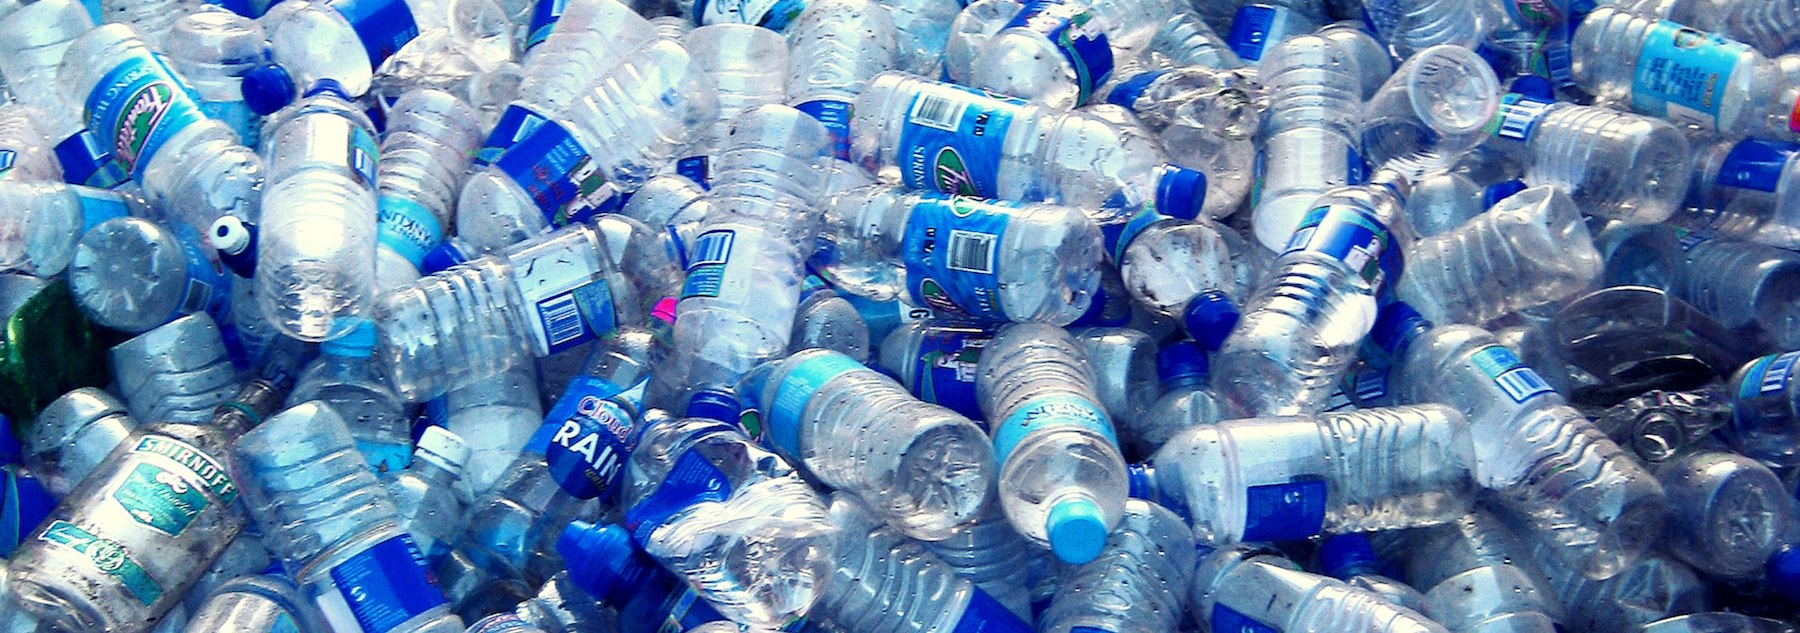 TAKE ACTION | It's time our favourite music festivals went plastic water bottle free!